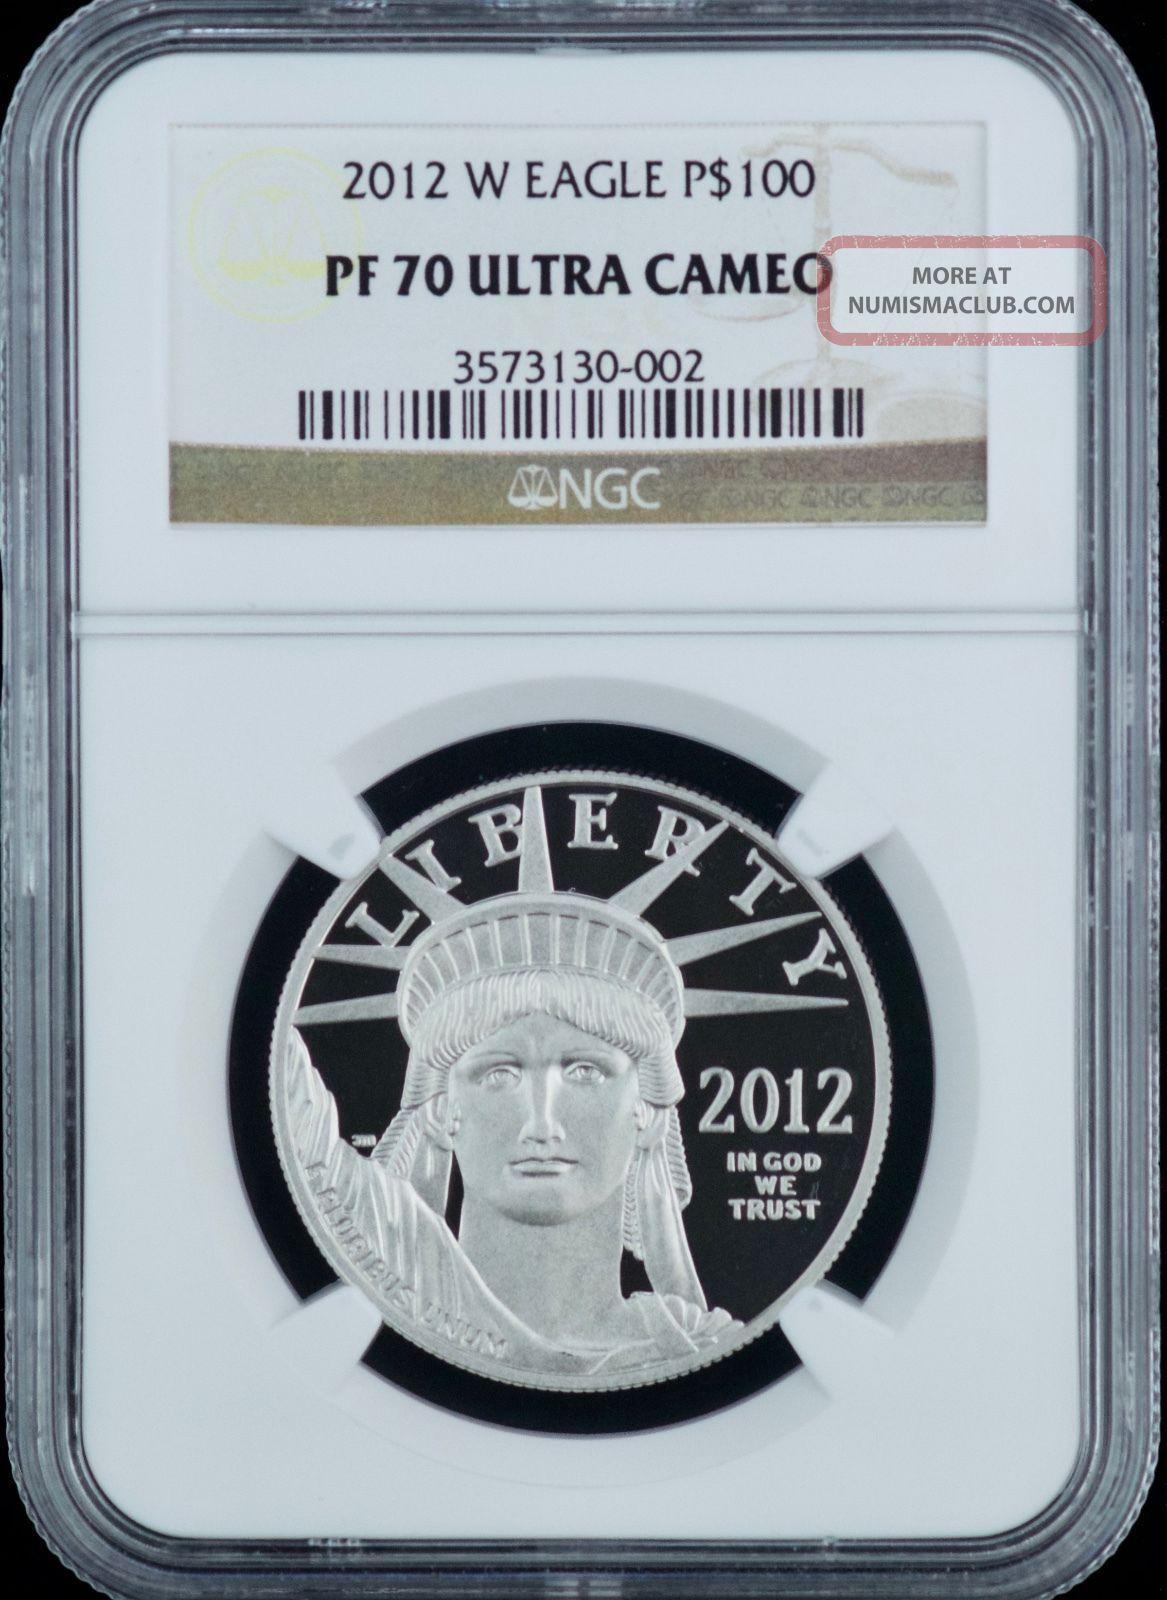 Ngc 2012 W Platinum Eagle P$100 Pf 70 Ultra Cameo One Ounce Hundred Dollar Coin Platinum photo